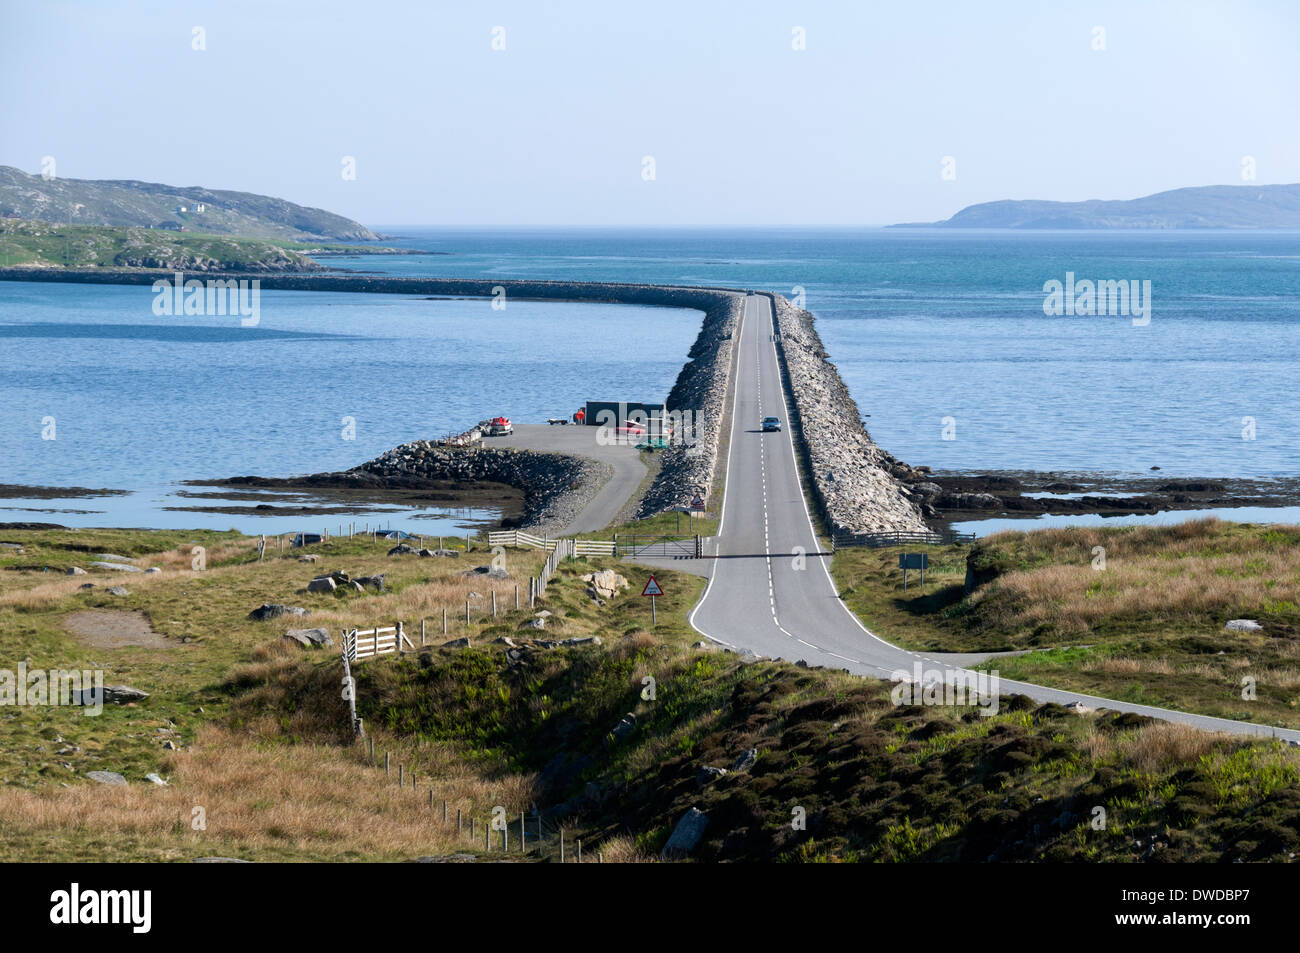 The Eriskay Causeway, linking the Islands of Eriskay and South Uist, Western Isles, Scotland, UK.  Seen from the Sth. Uist side. - Stock Image